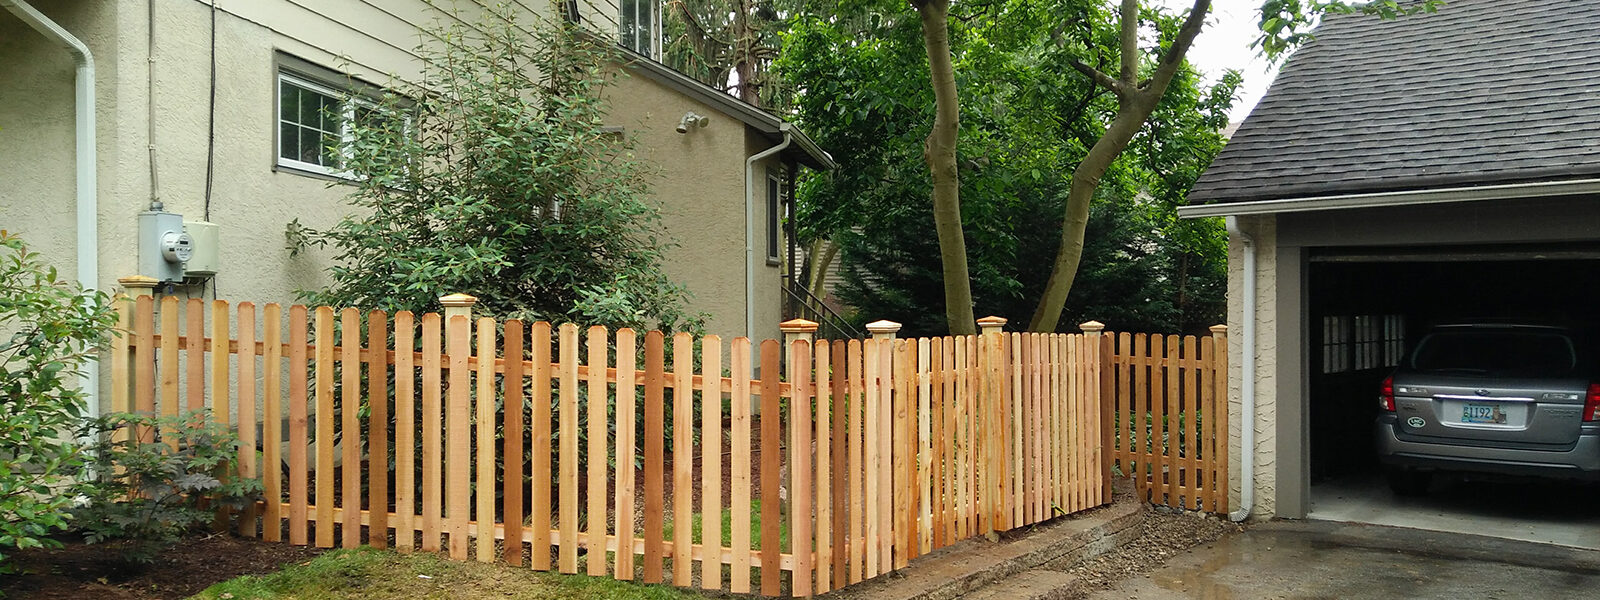 wood picket fence around yard